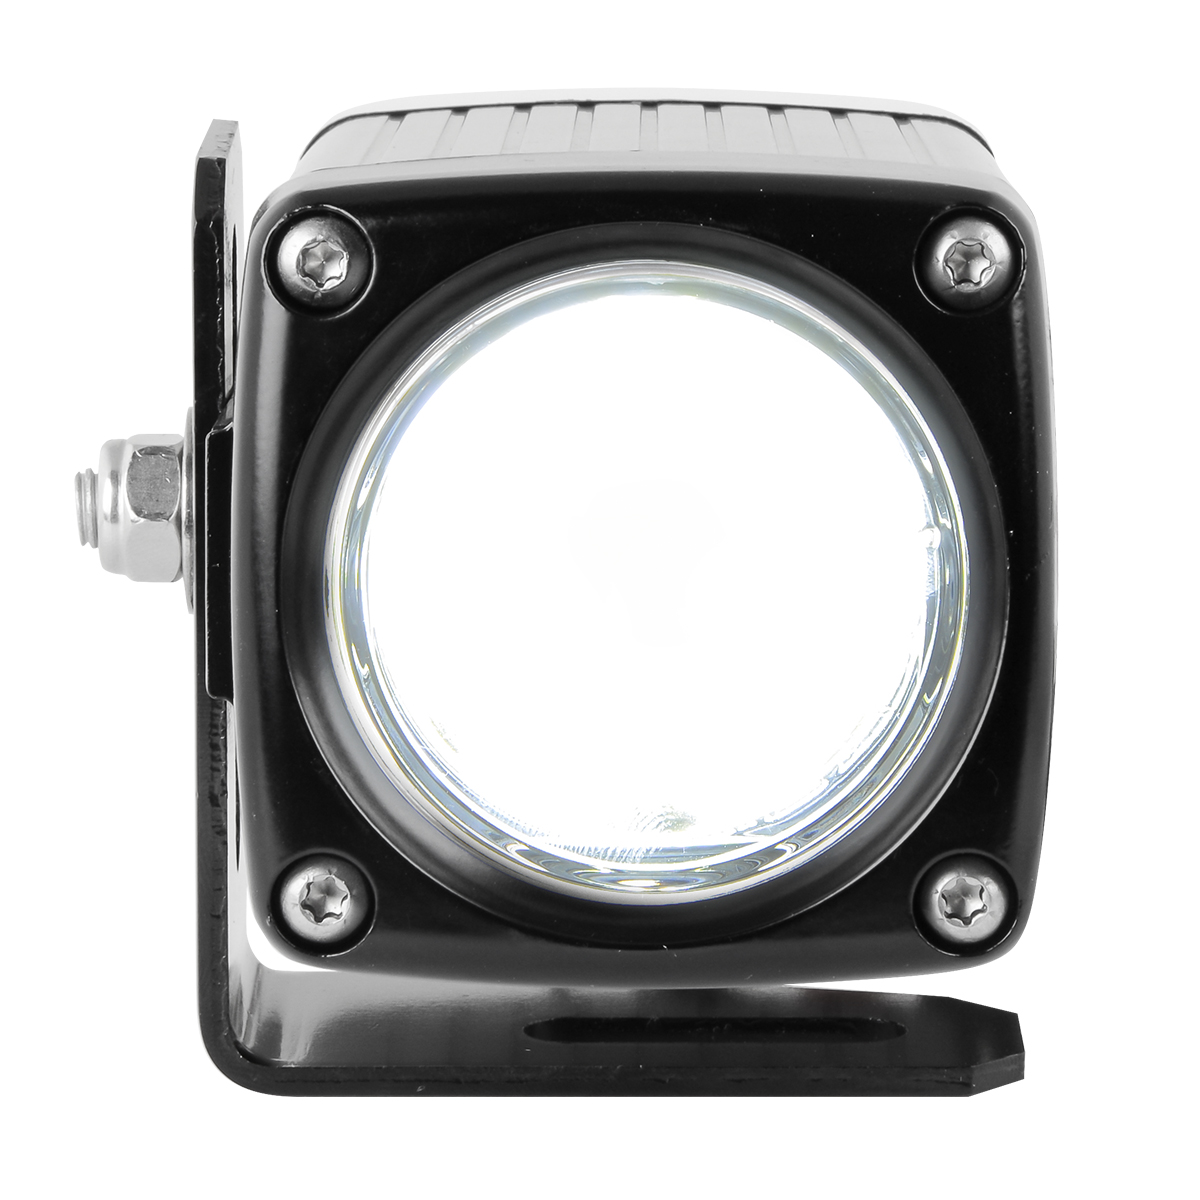 76366 Super LED Spot Light with L Stand Bracket